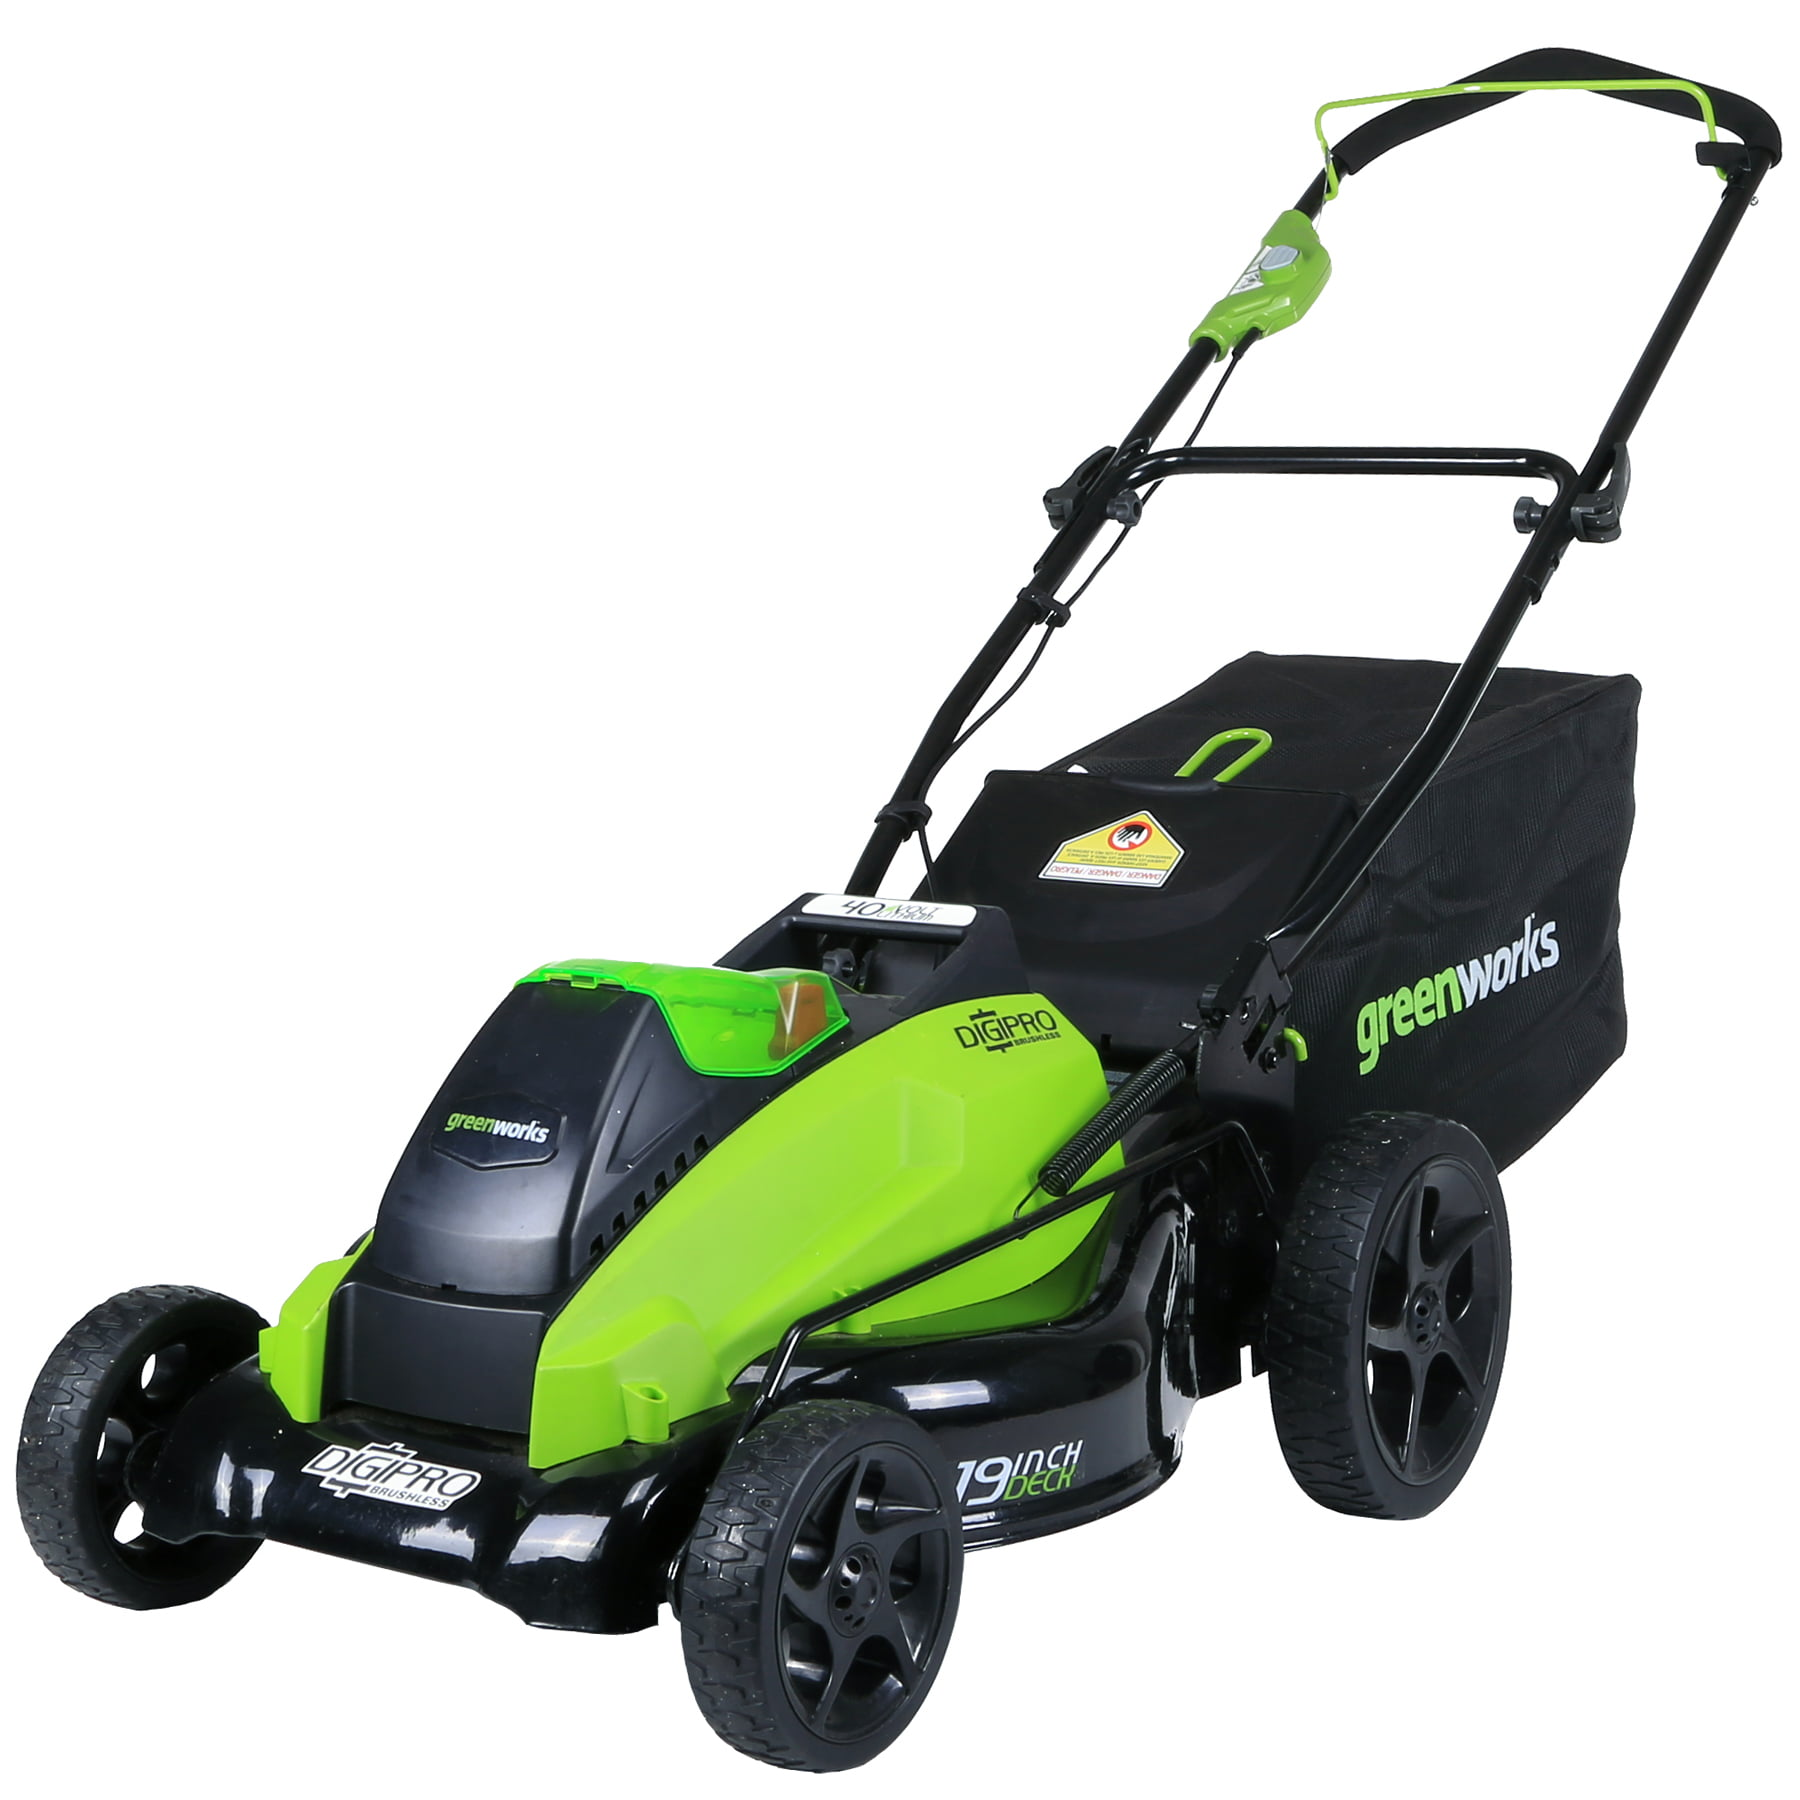 Greenworks 19-Inch 40V Cordless Lawn Mower, Battery Not Included 2501302 by Sunrise Global Marketing